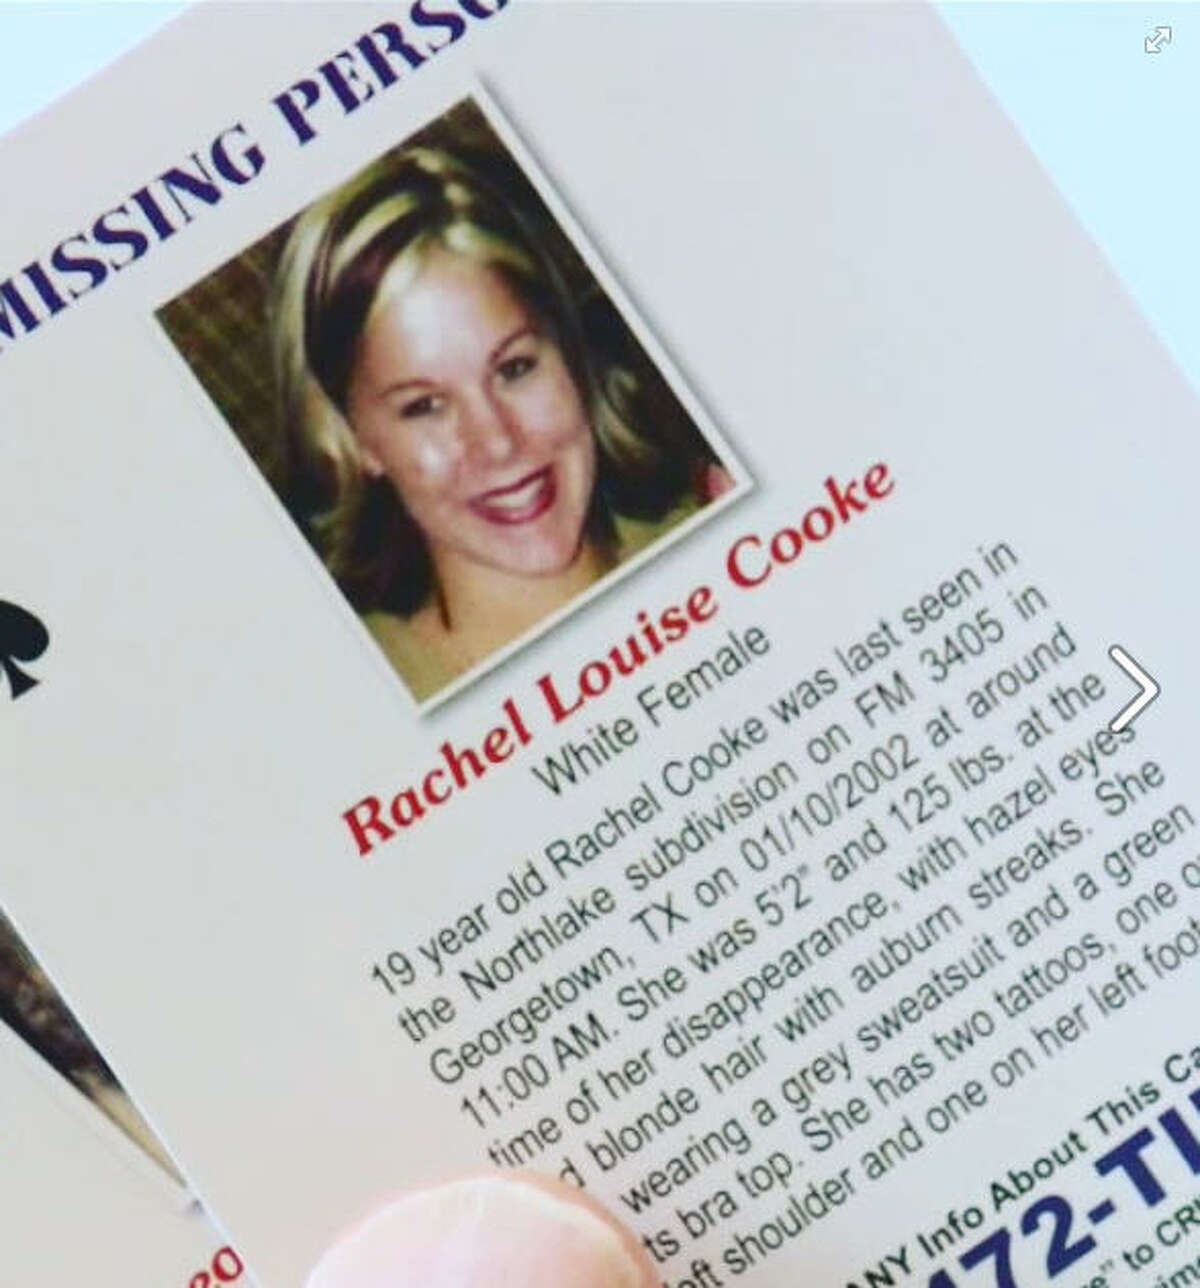 A Texas sheriff is assembling a team of retired investigators from around the state to take a look at unsolved disappearances and homicides. Williamson County Sheriff Robert Chody put the disappearance of 19-year-old Rachel Cooke of Georgetown at the top of the list. Scroll through to see details on 20 other cold cases from around San Antonio.